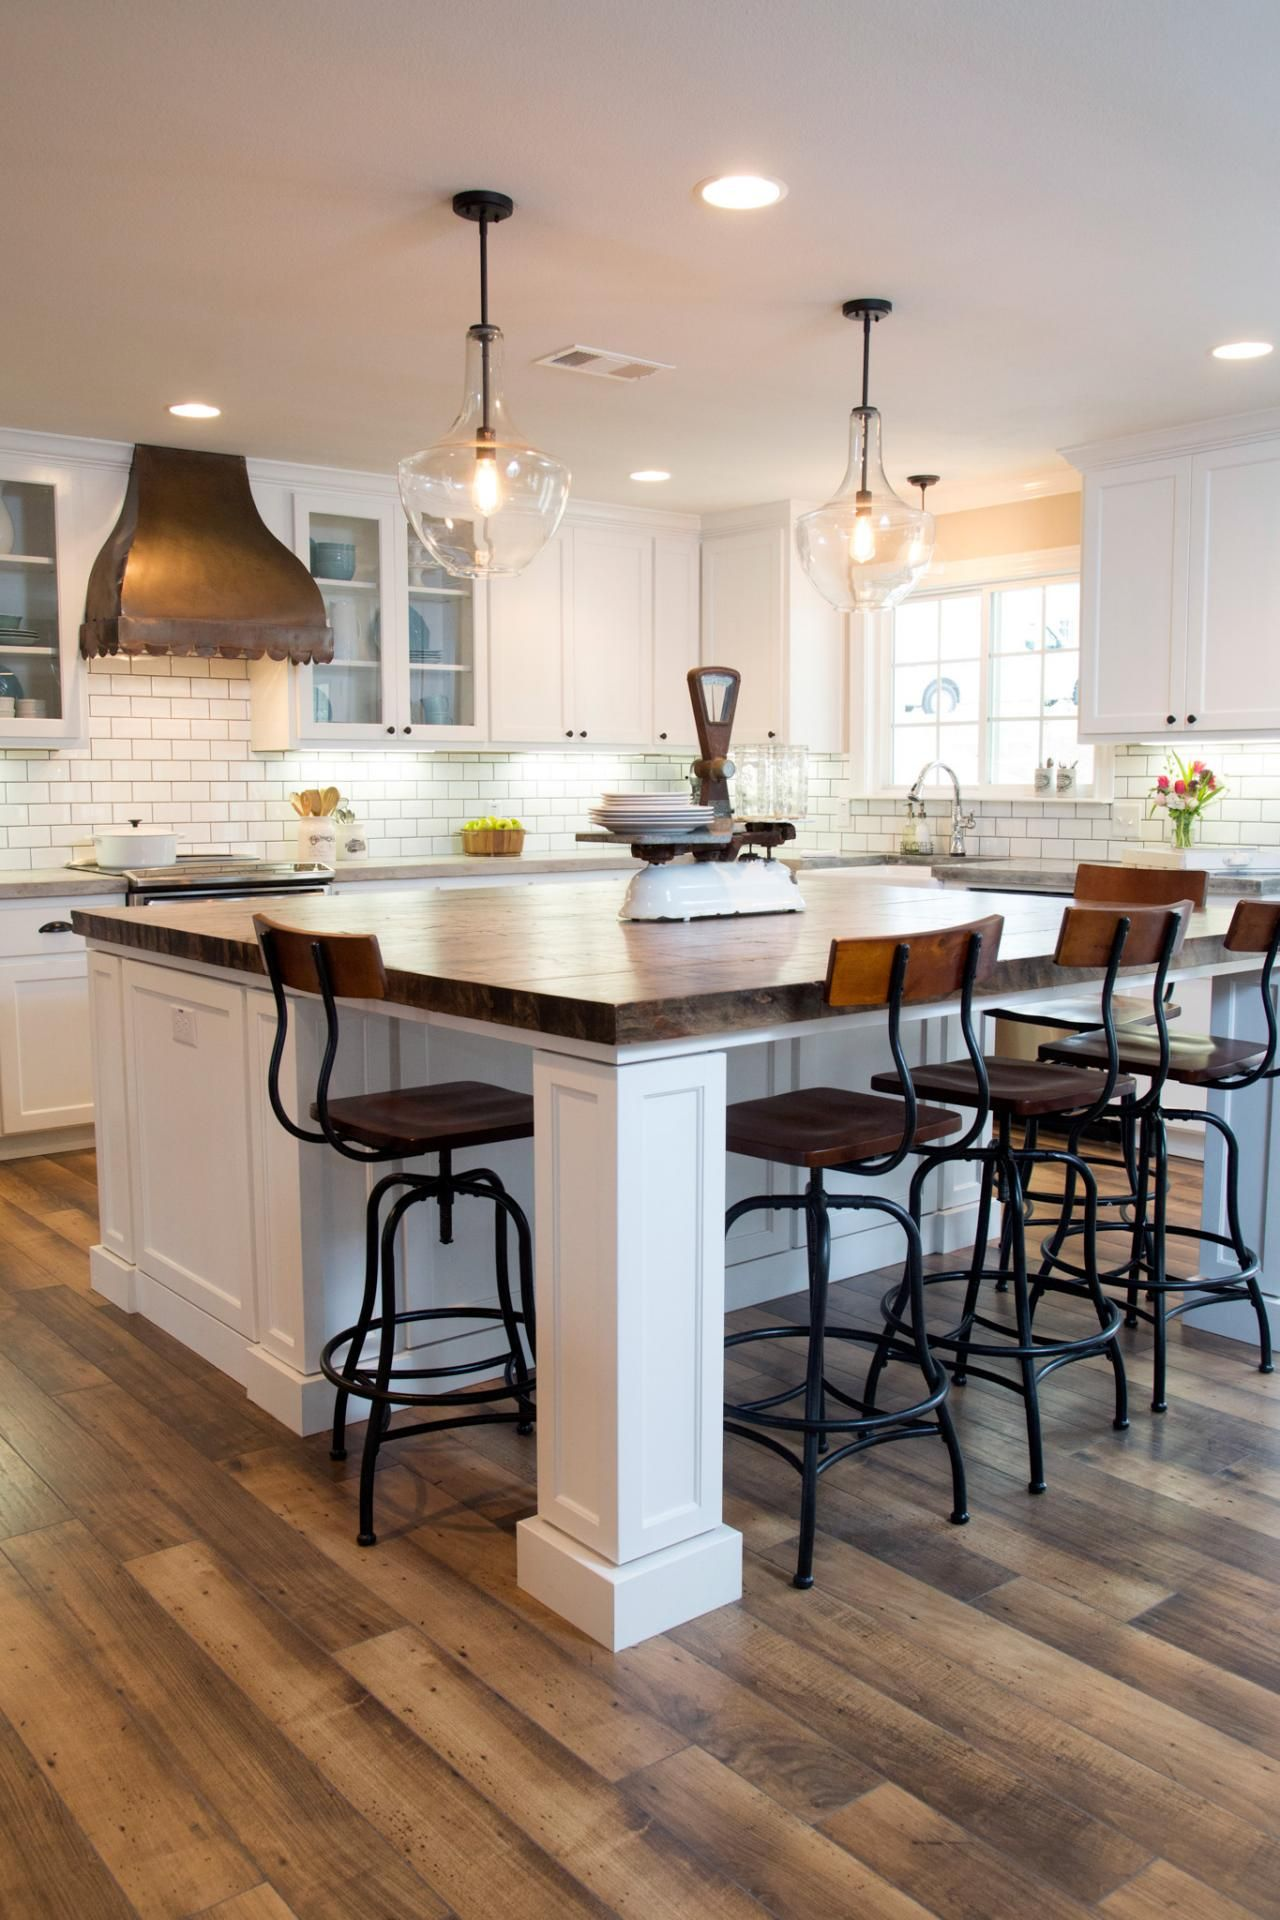 Fixer upper kitchen island pictures - Life Is Just A Tire Swing A Woodway Texas Fixer Upper Pendant Lights Kitchen Islandkitchen